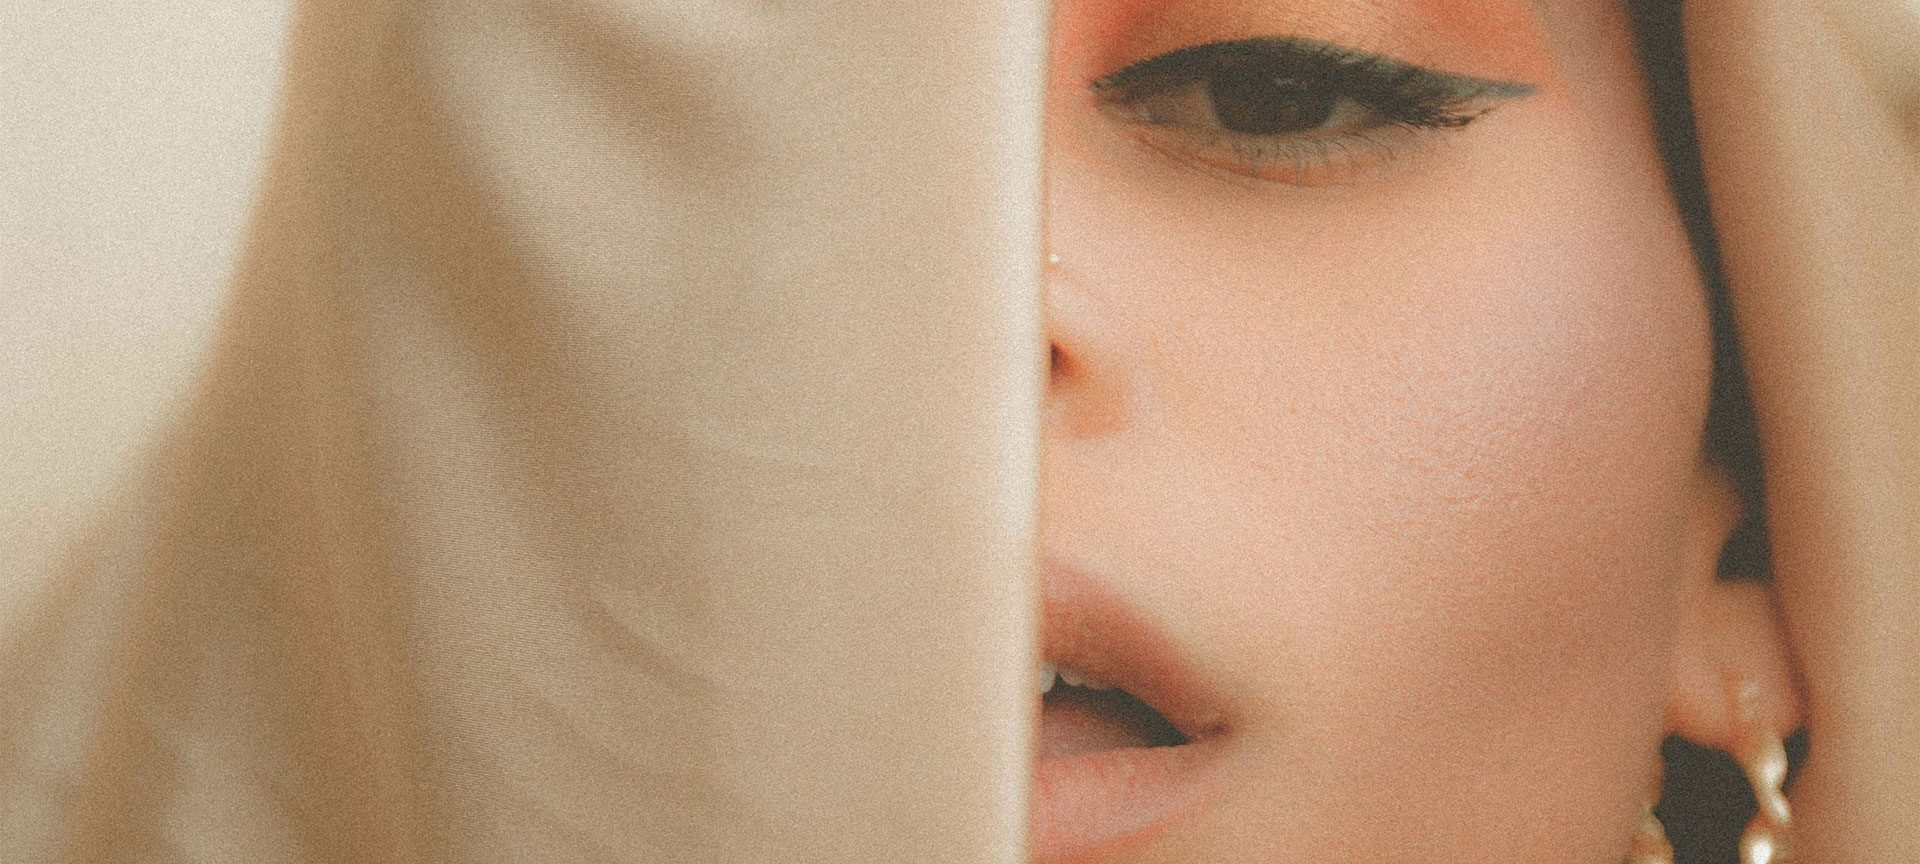 A young woman's face partially obscured by a veil